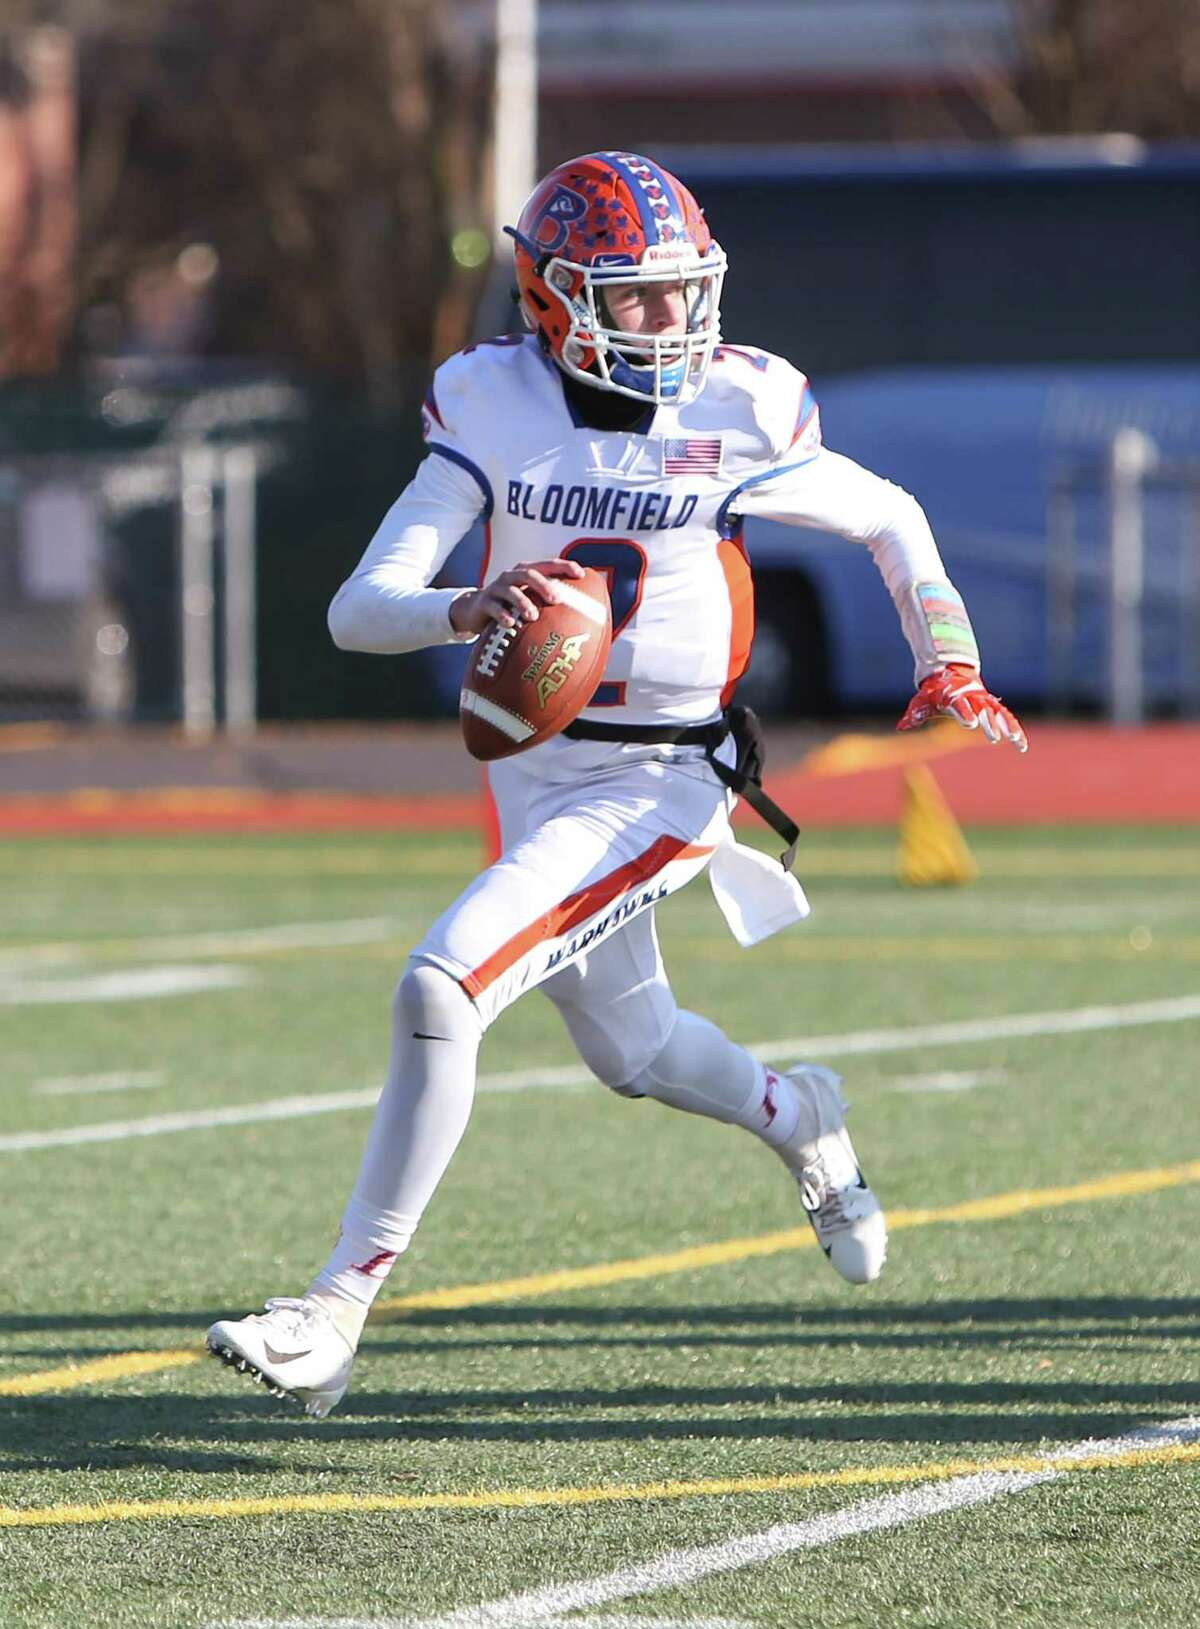 Bloomfield High School quarterback Daron Bryden throws on the move during the Class S Championship Game in New Britain against Haddam-Killingworth High School on Saturday, Dec. 8, 2018.